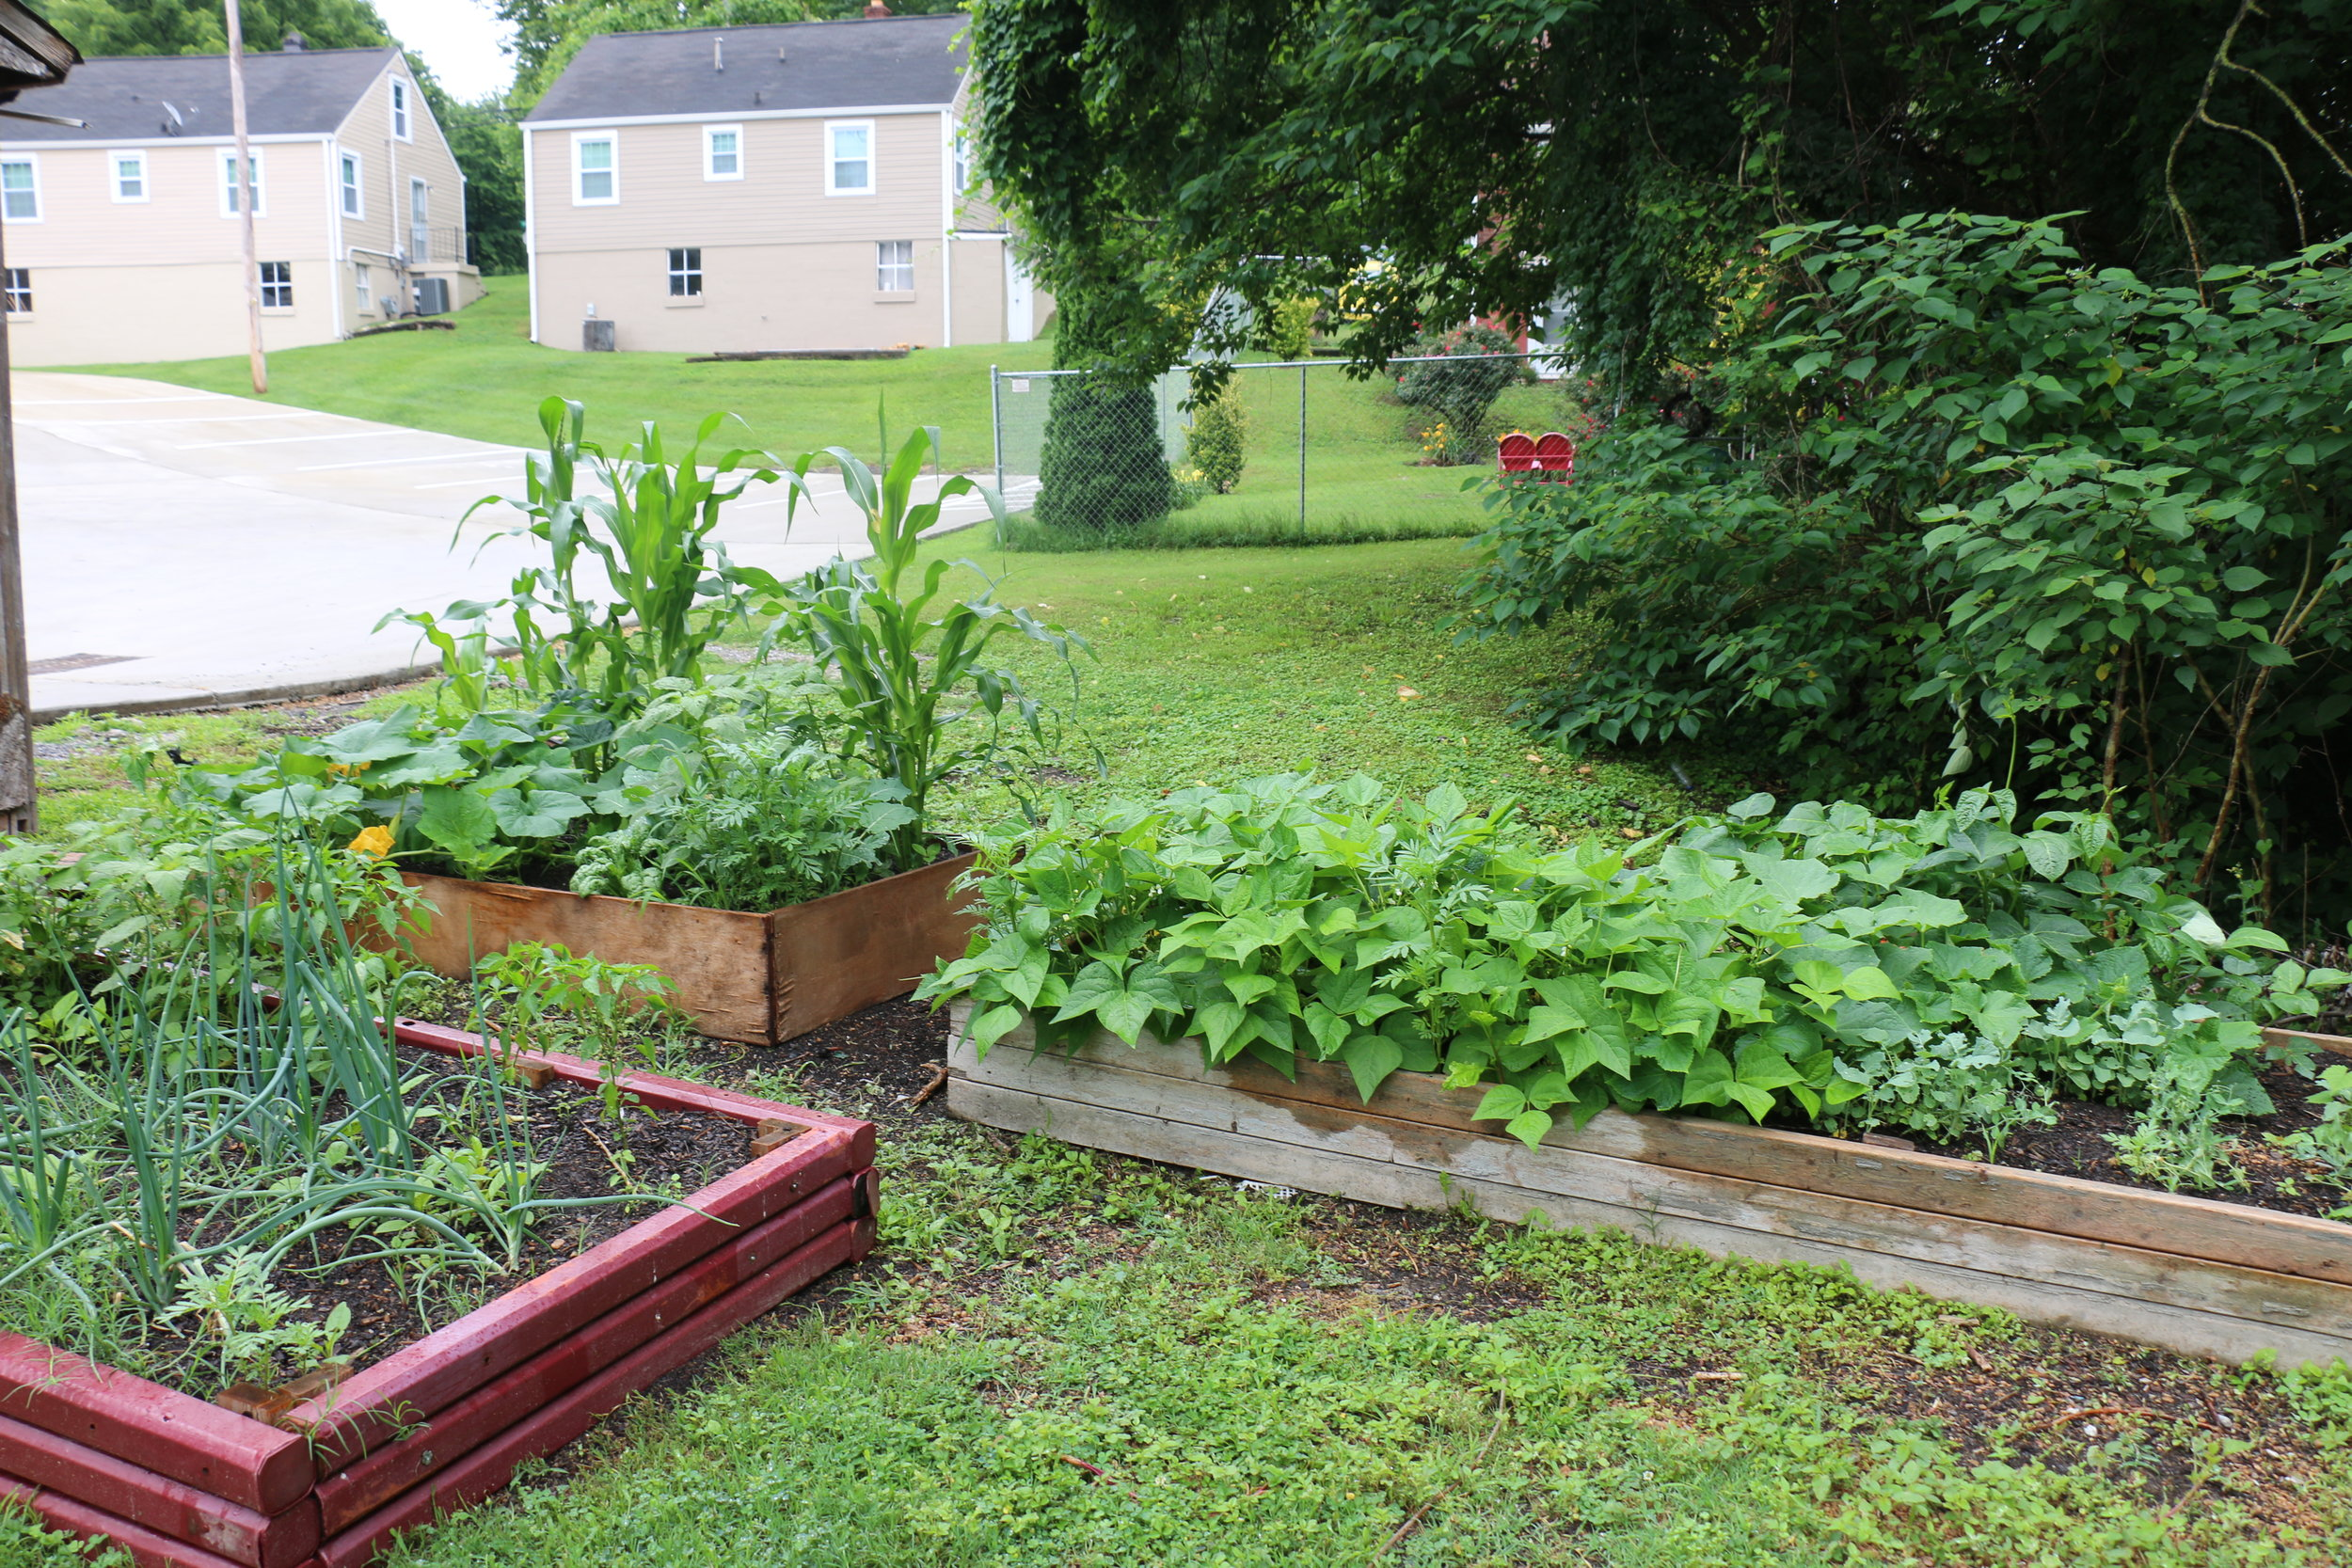 Food Pantry and Community Garden - The food pantry is for all in need. The community garden exists to help provide the pantry with fresh vegetables. It also allows opportunity for all ages to engage in the cultivation of creation.